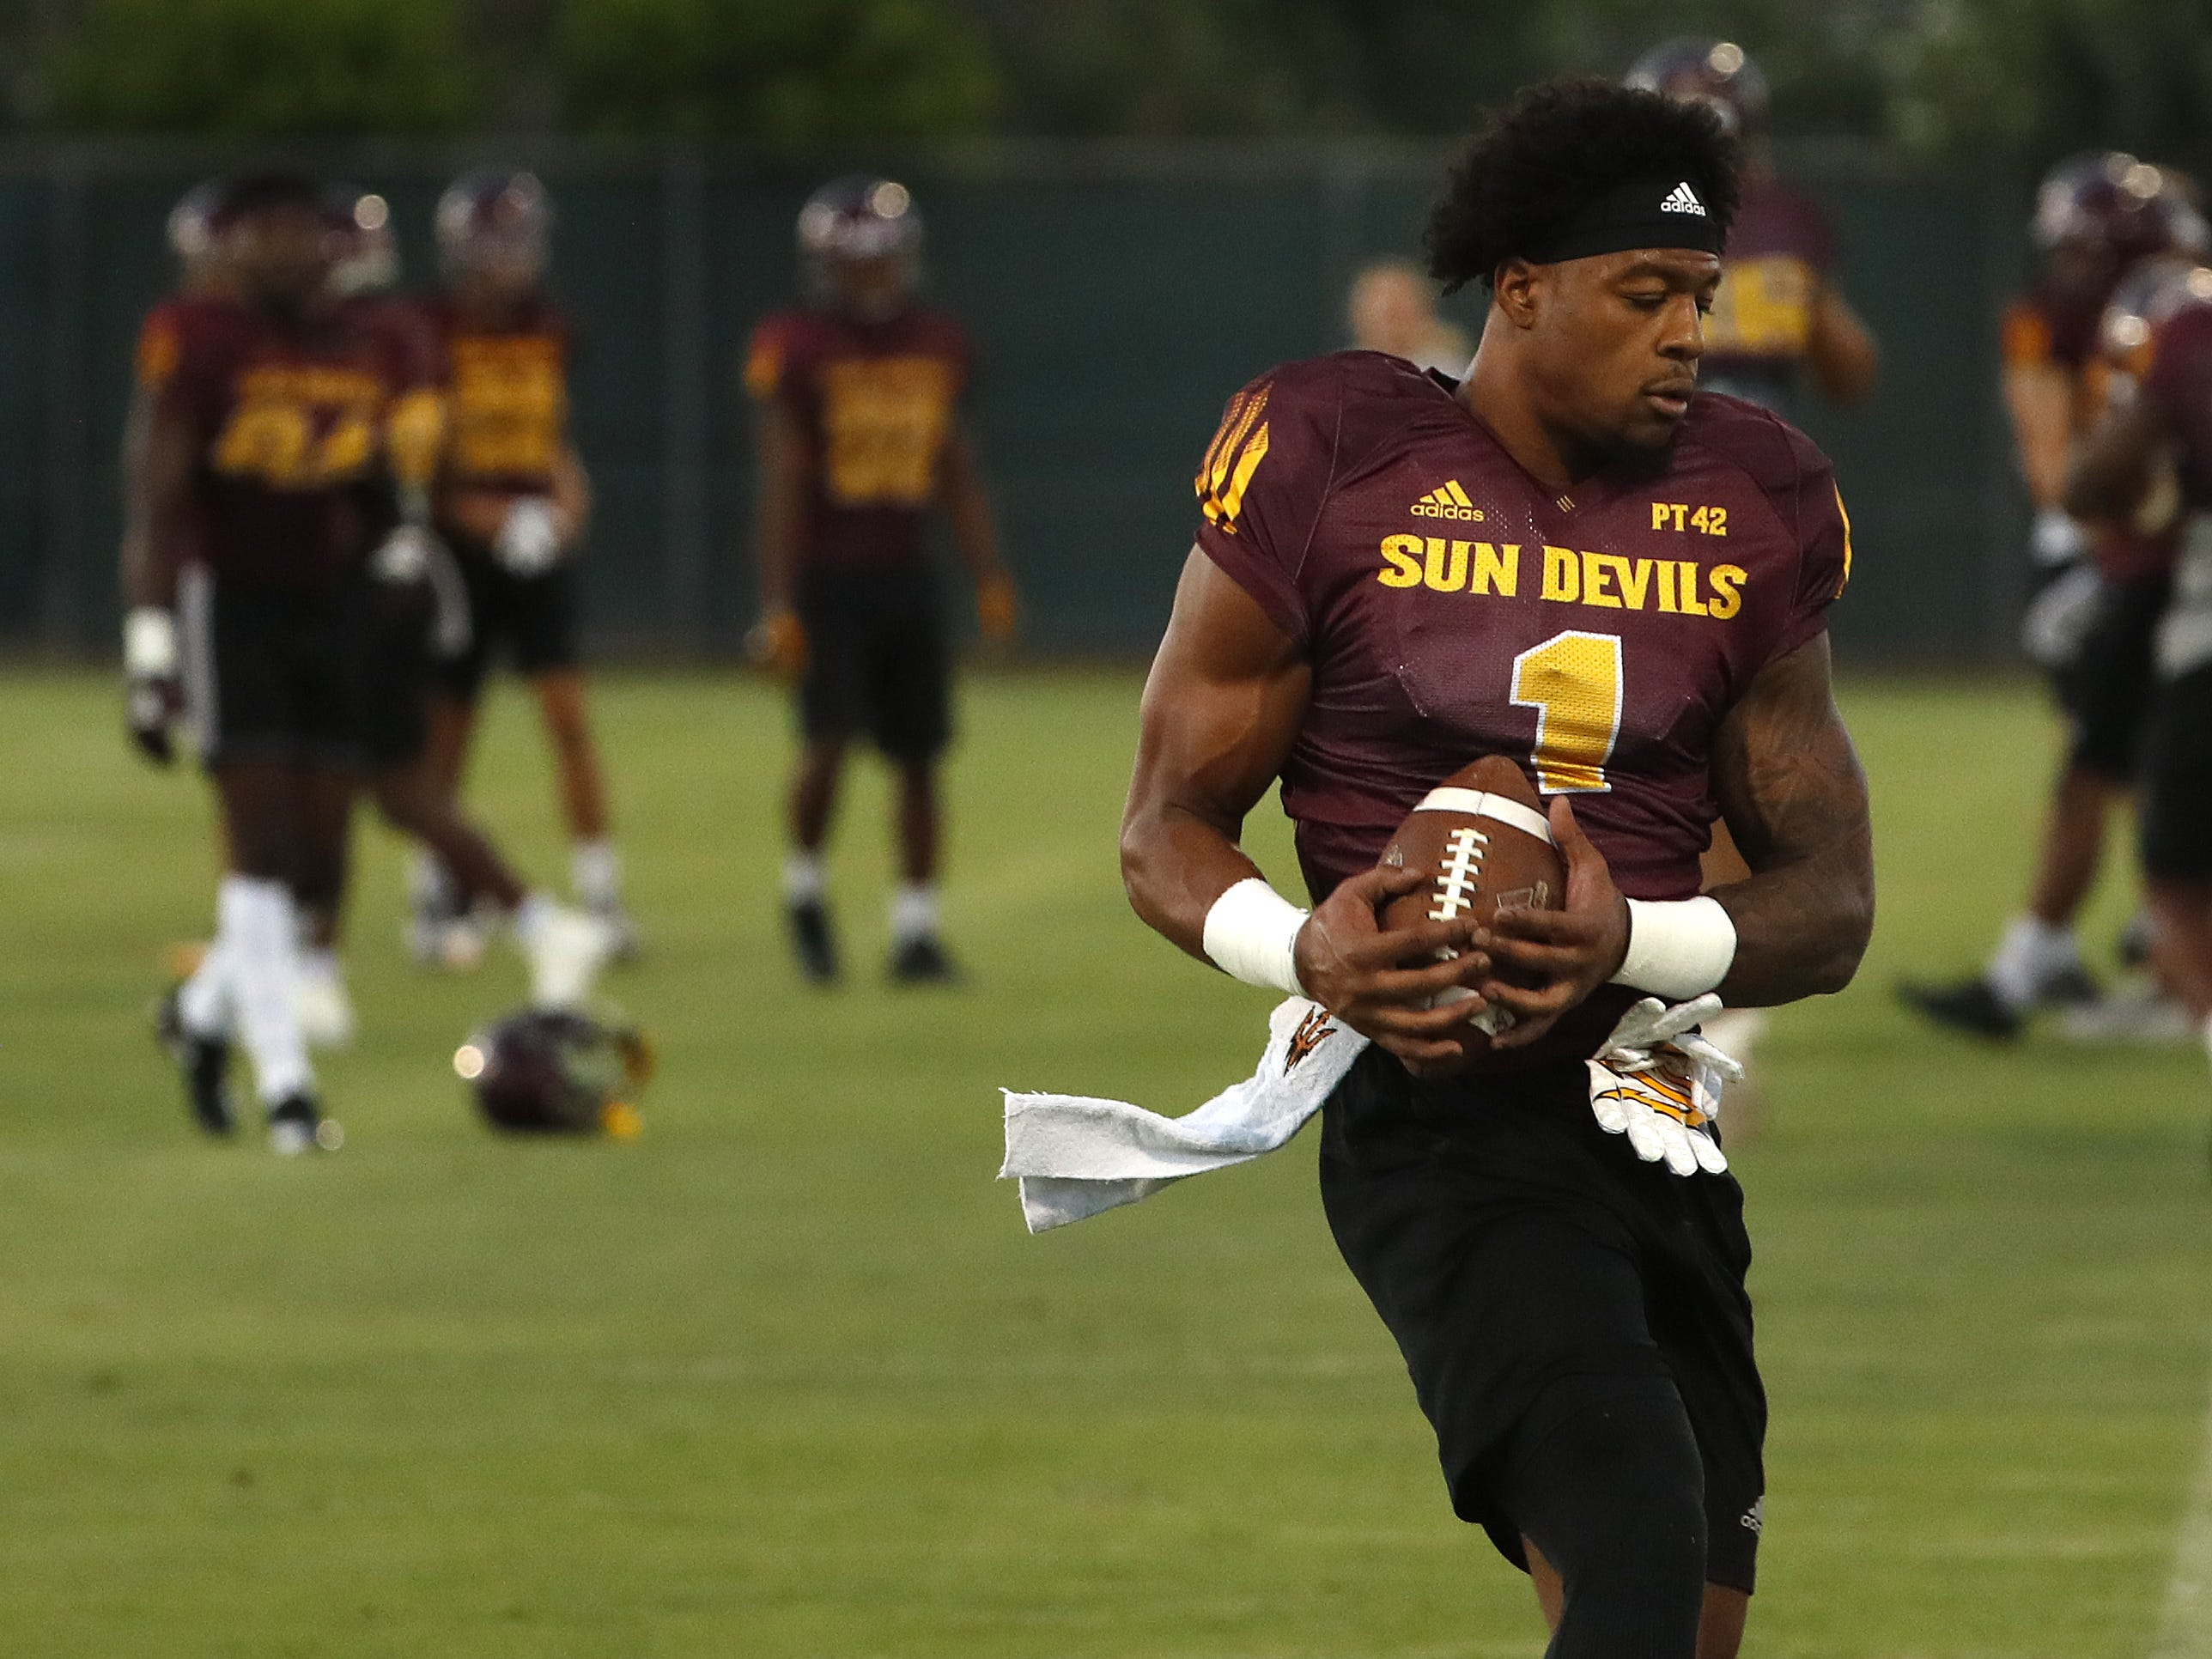 ASU's N'Keal Harry (1) makes a catch during a practice at Kajikawa Football Practice Fields in Tempe, Ariz. on Aug. 6, 2018.